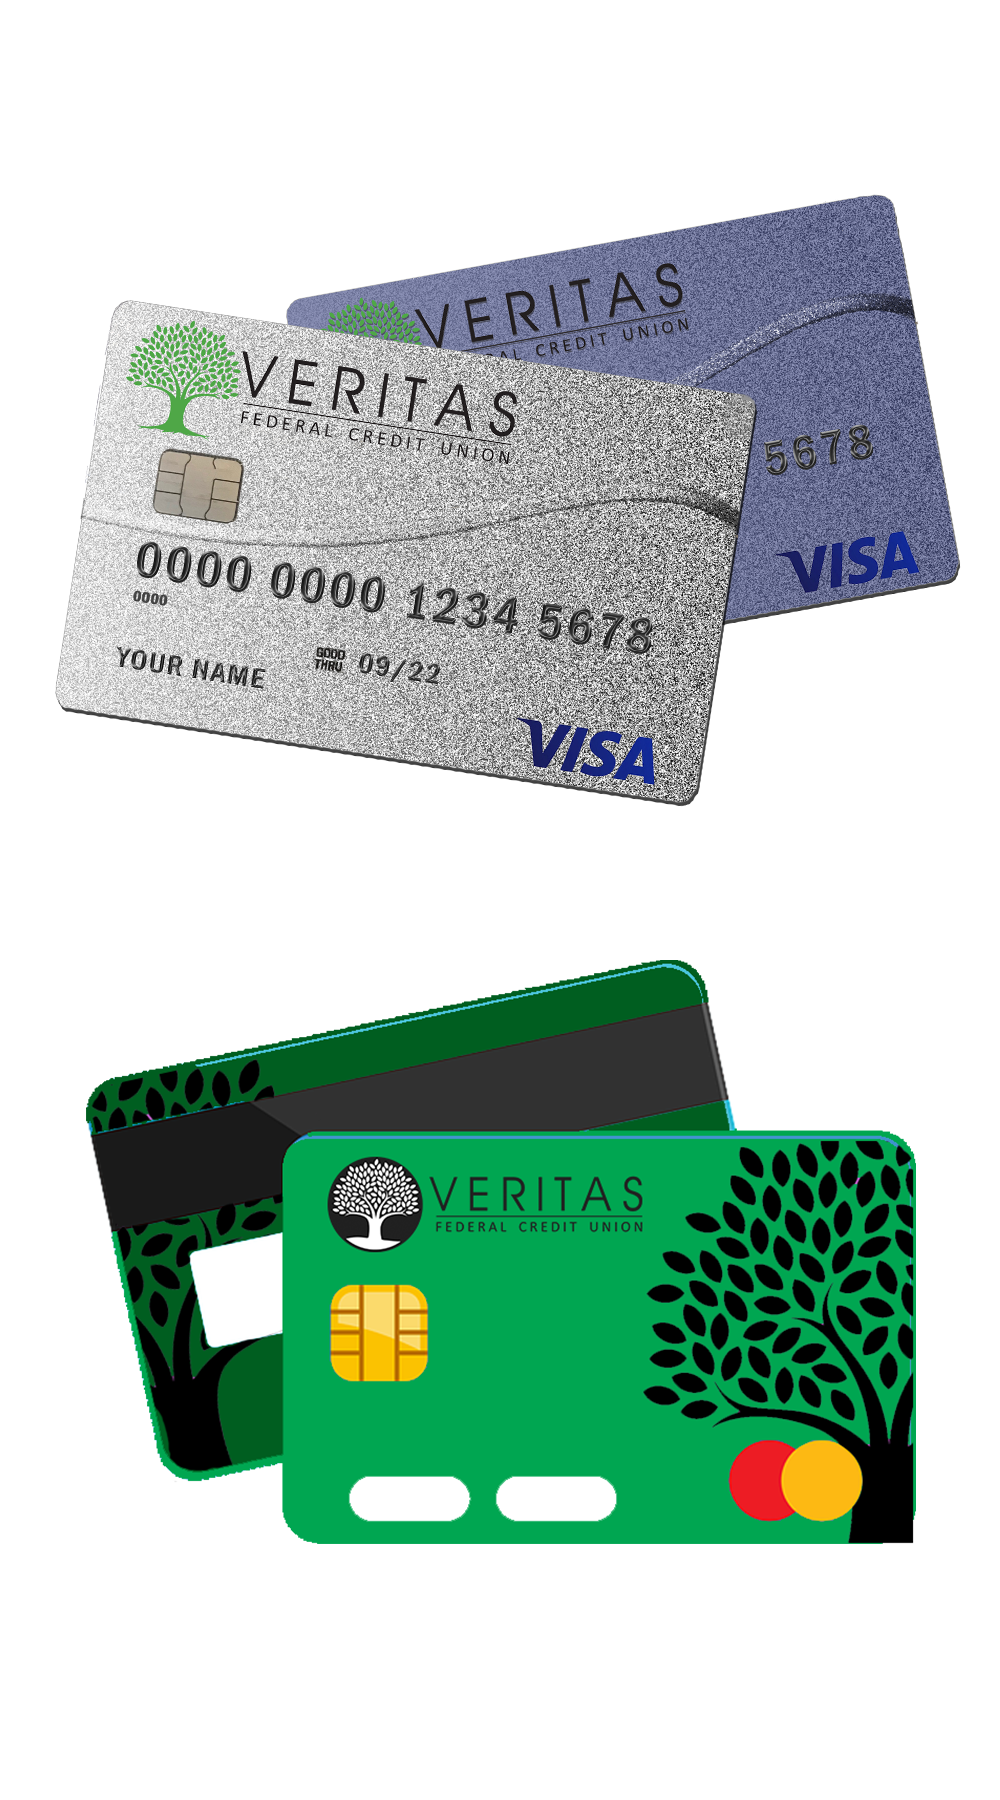 Types of Veritas Federal Credit Union cards